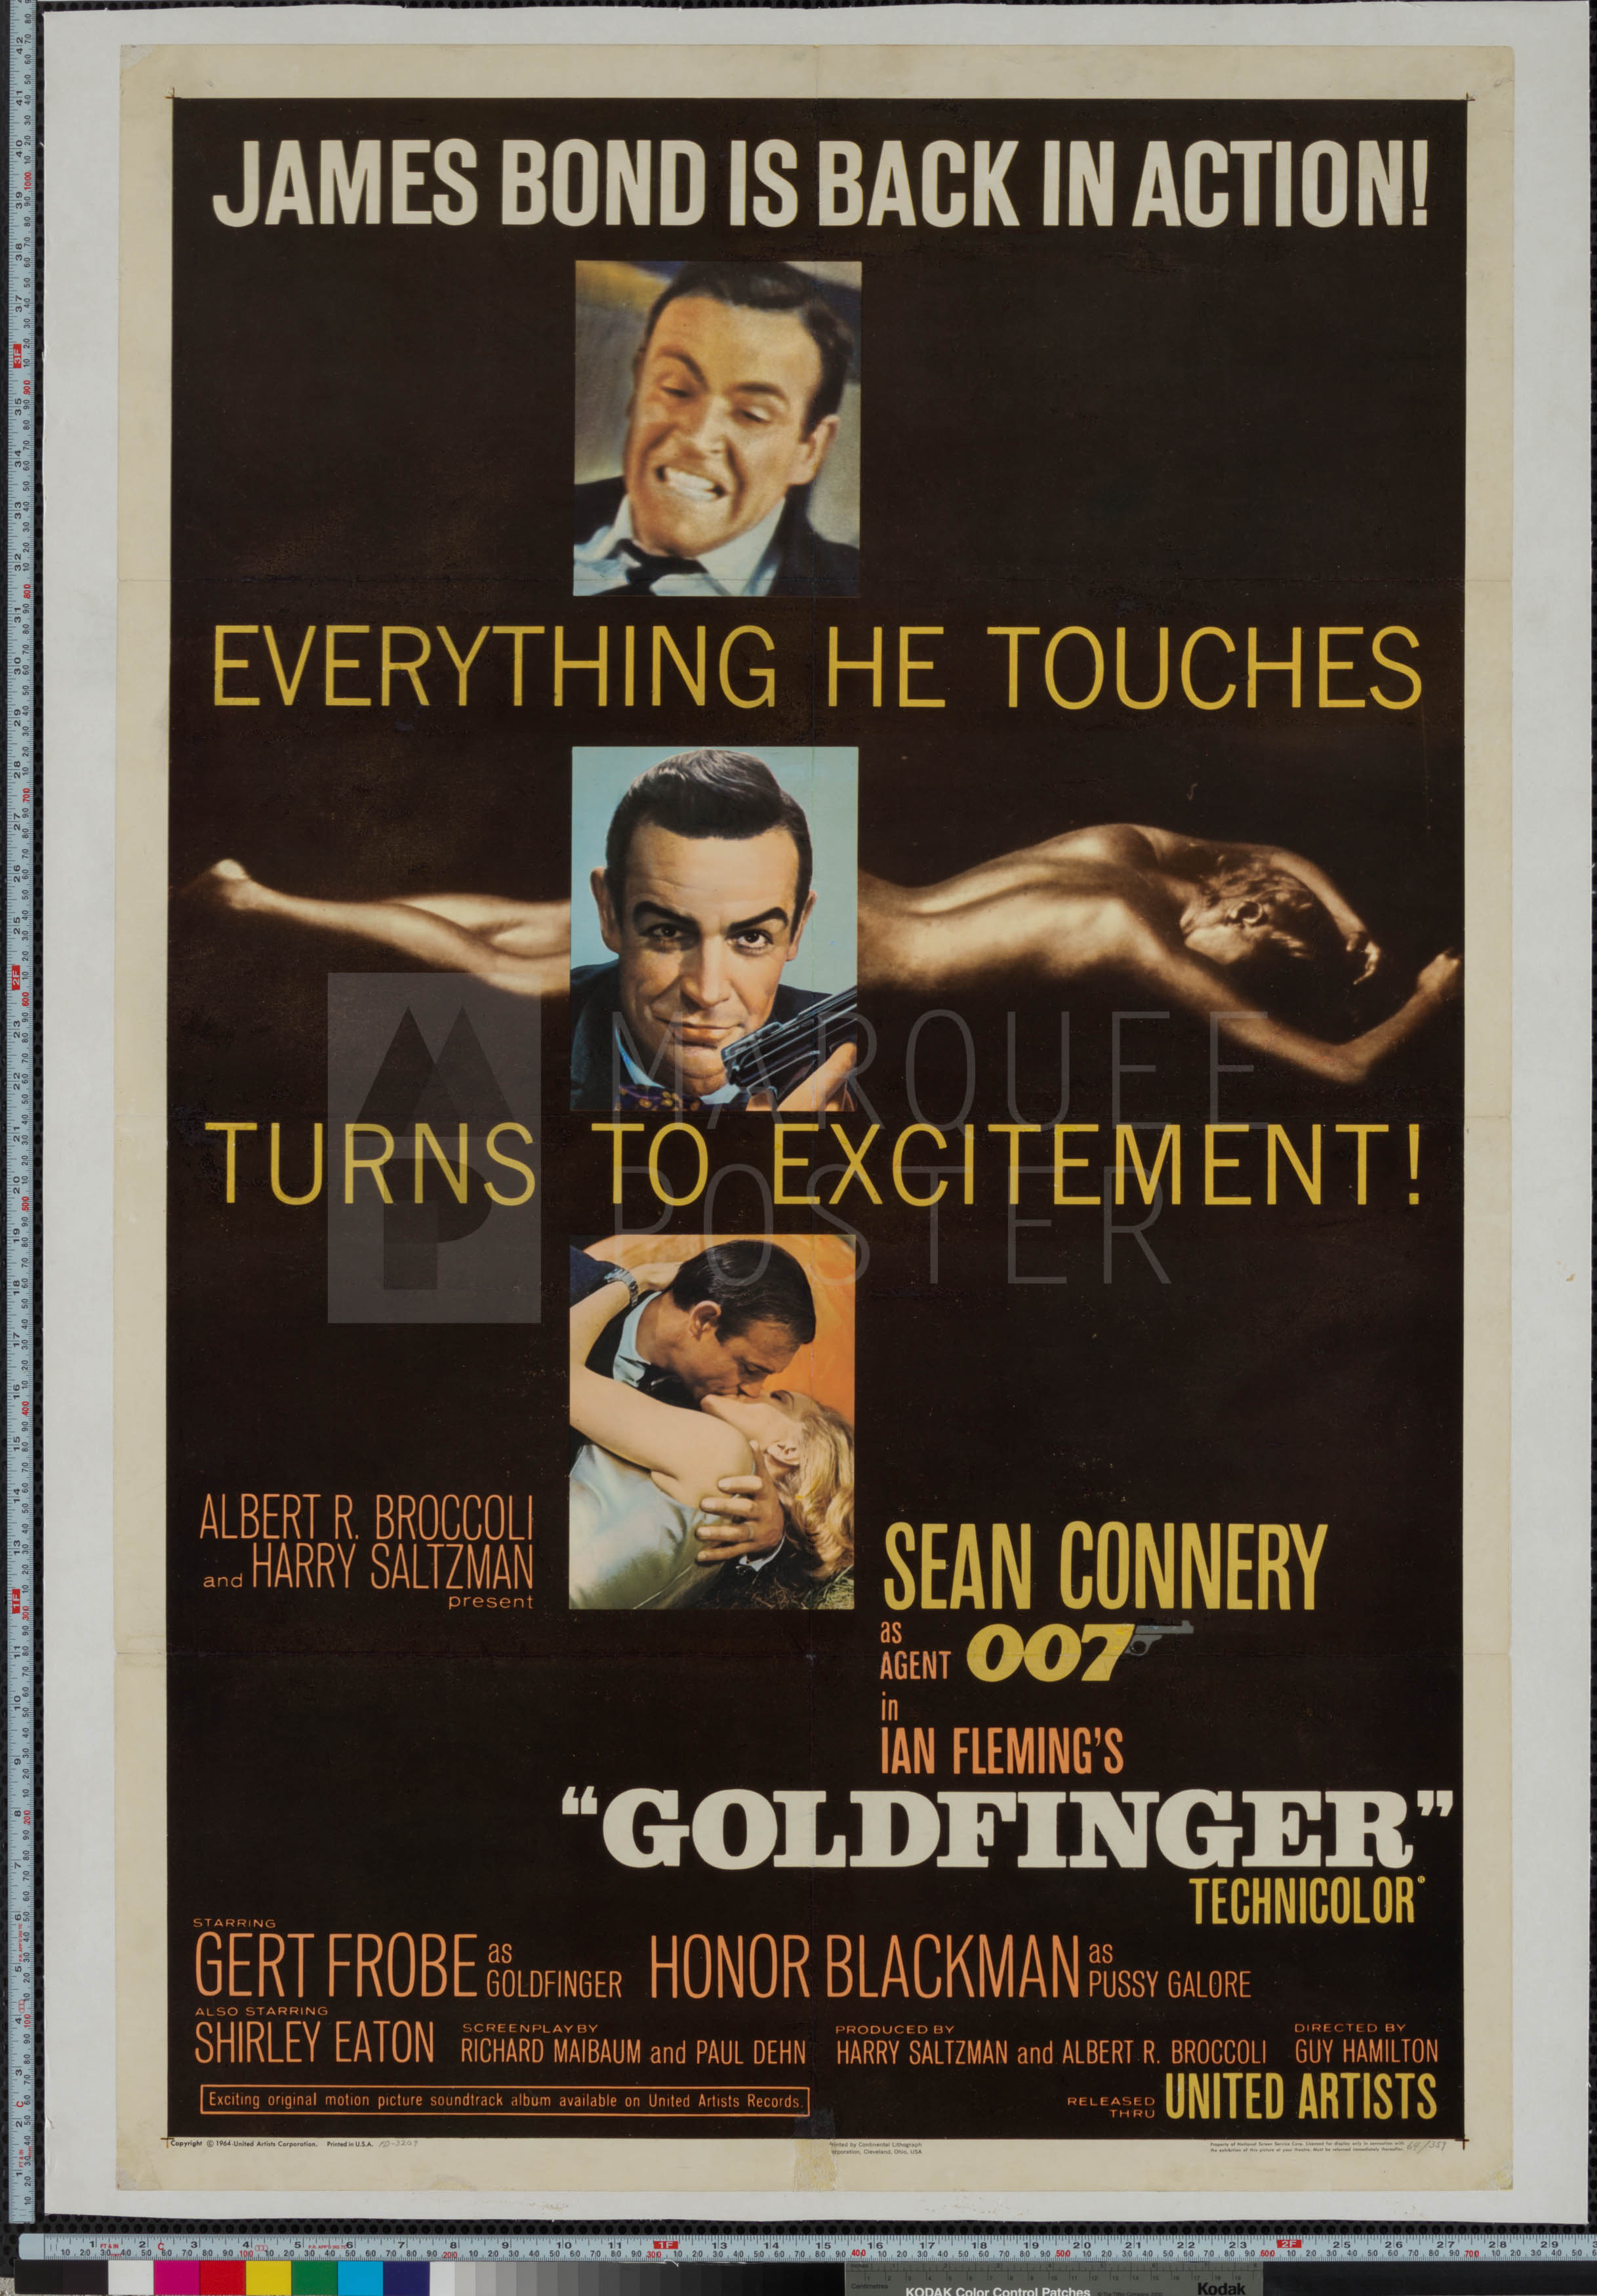 56-goldfinger-glossy-style-us-1-sheet-1964-02